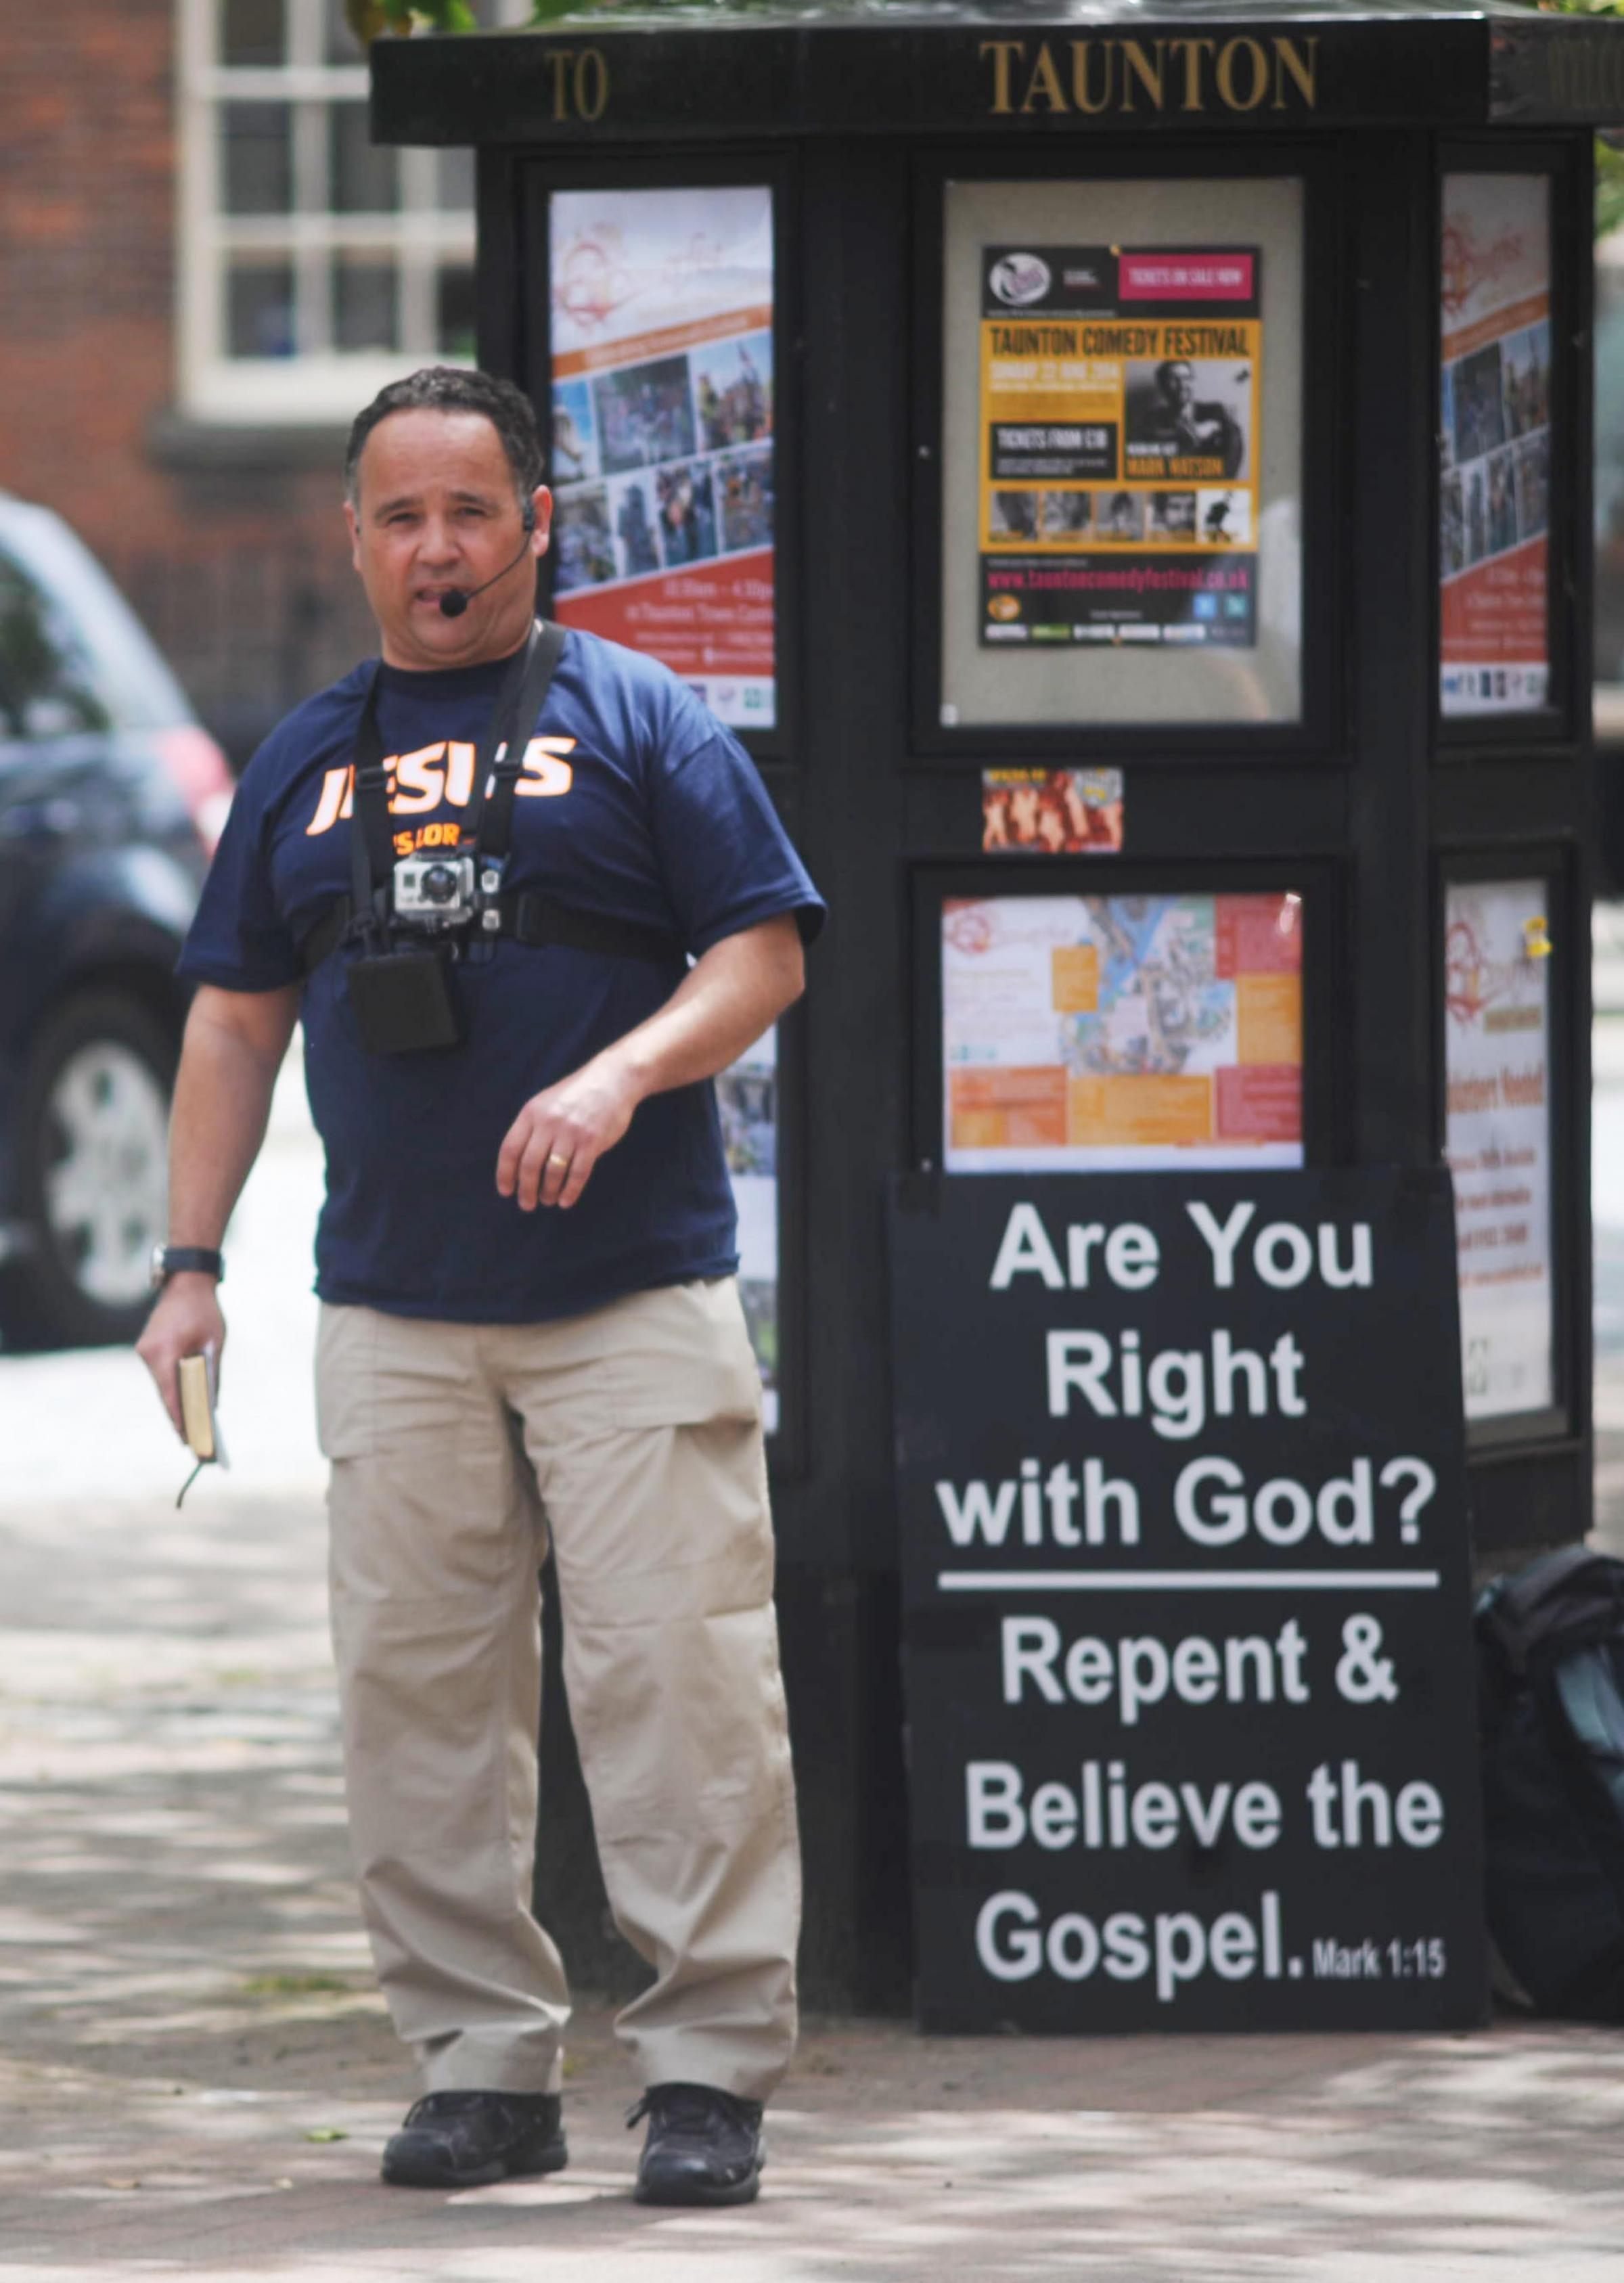 Police advise people to video street preacher 'if he make offensive remarks'